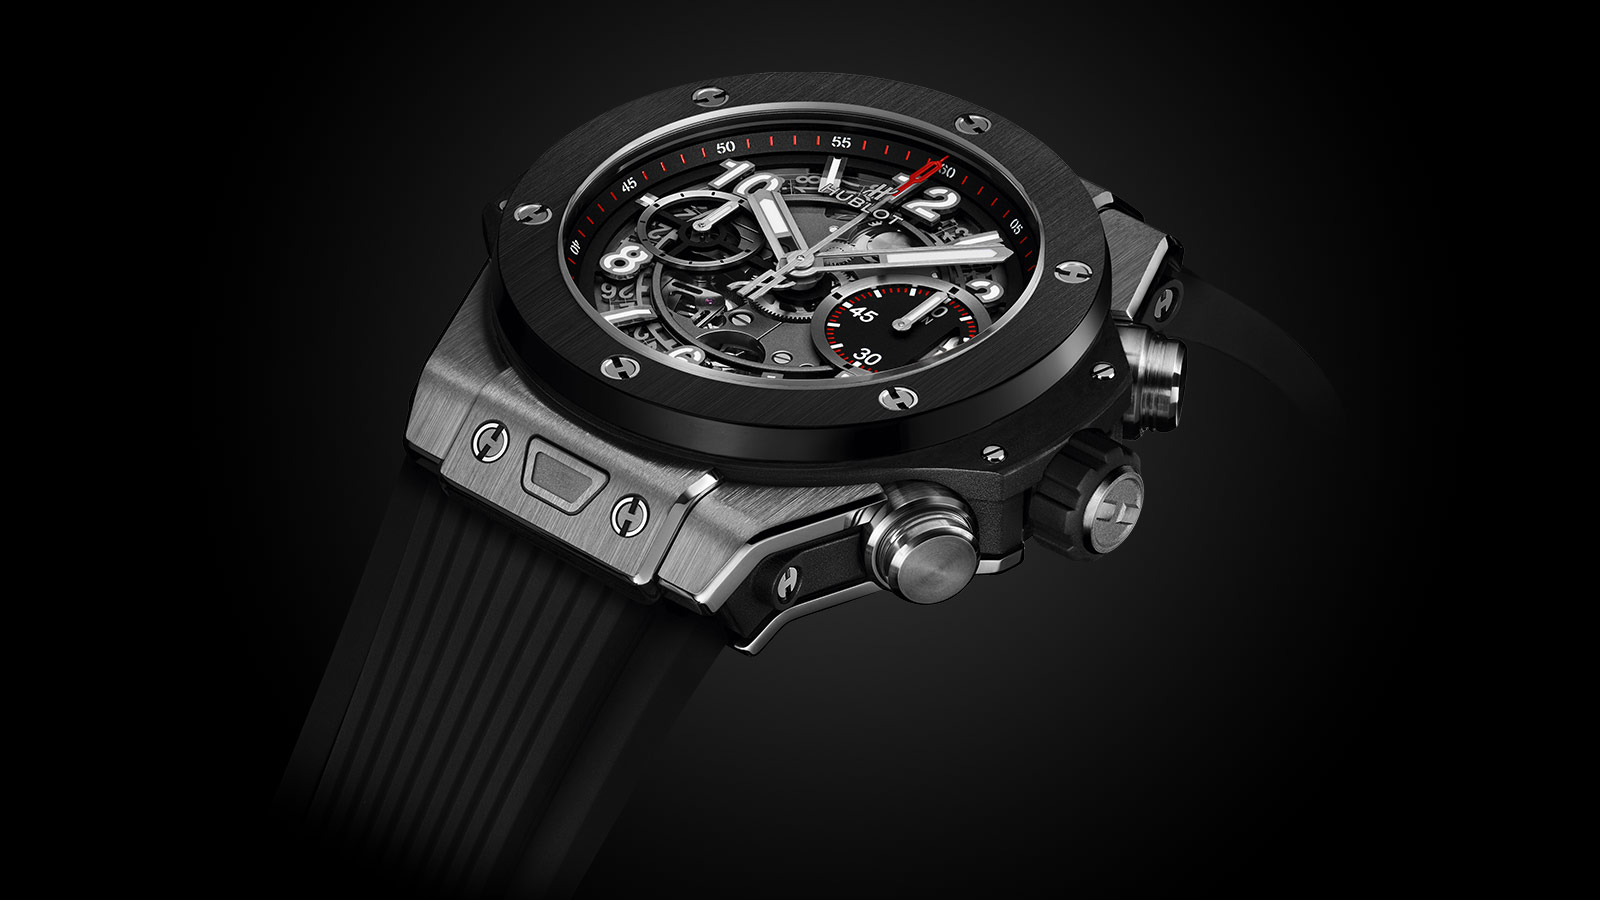 For this replica Hublot watch, the most eye-catching feature should be the matte skeleton dial, you can directly see the mechanical beauty.